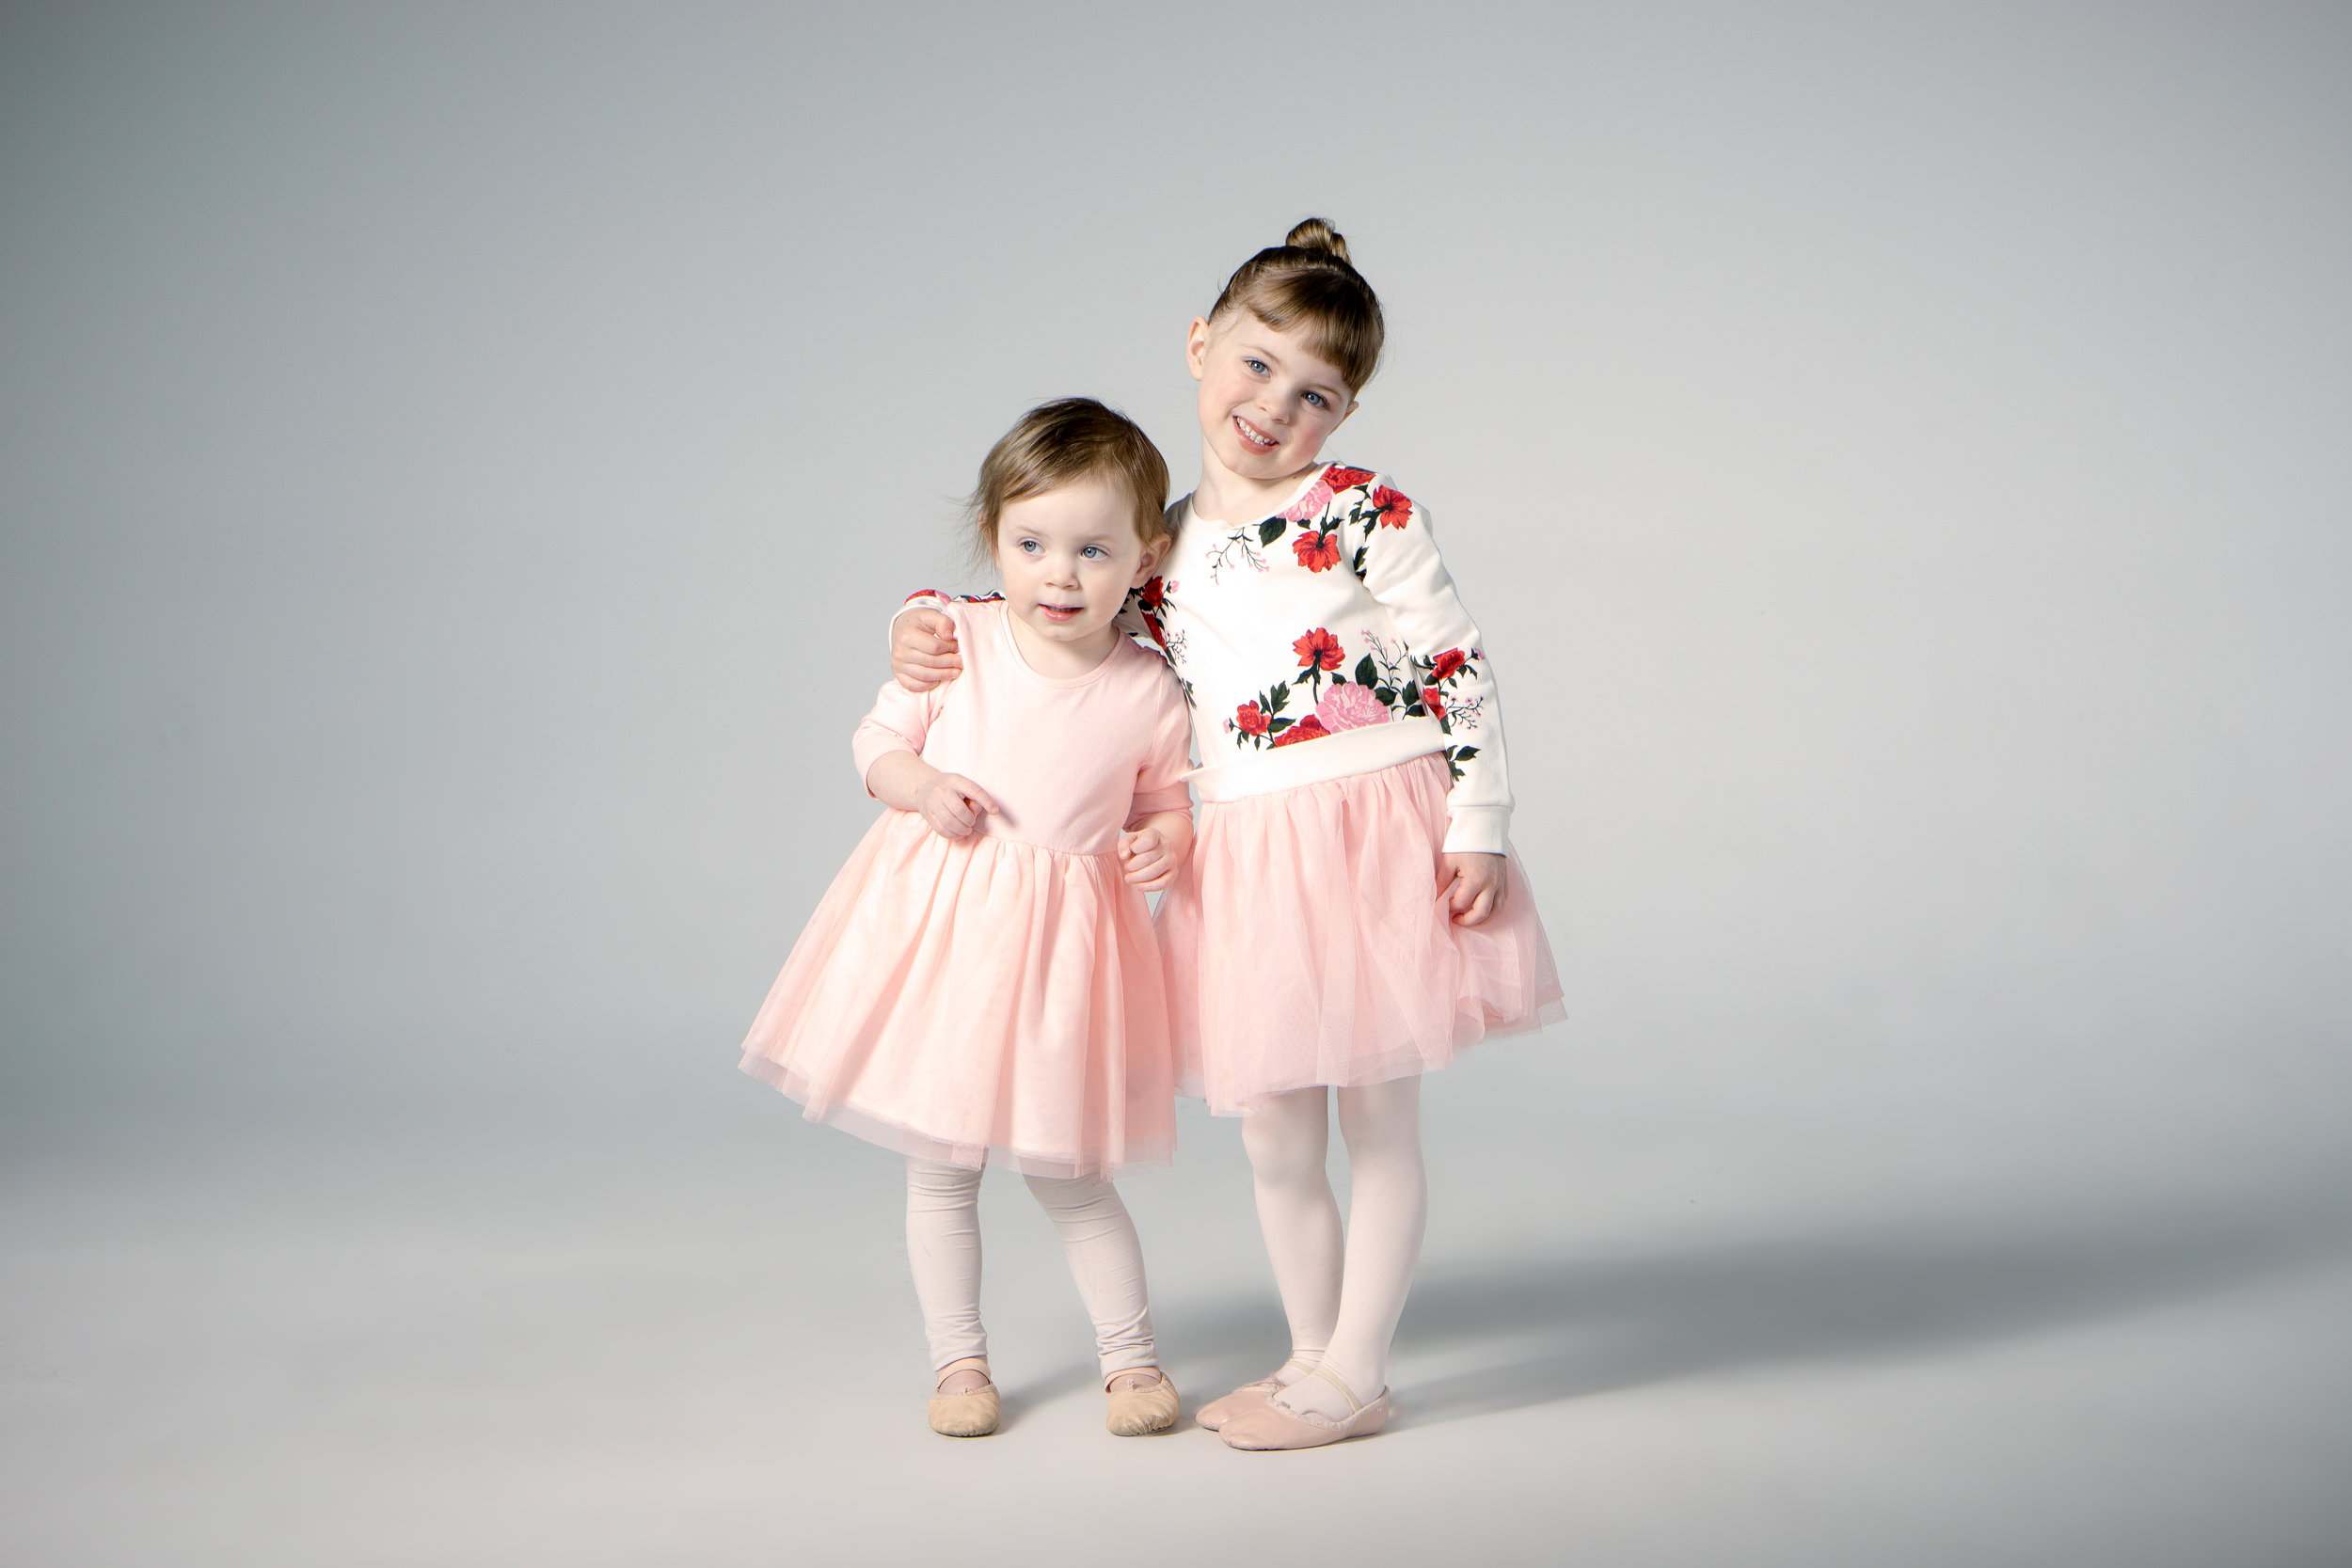 two young girls hugging in ballet outfits